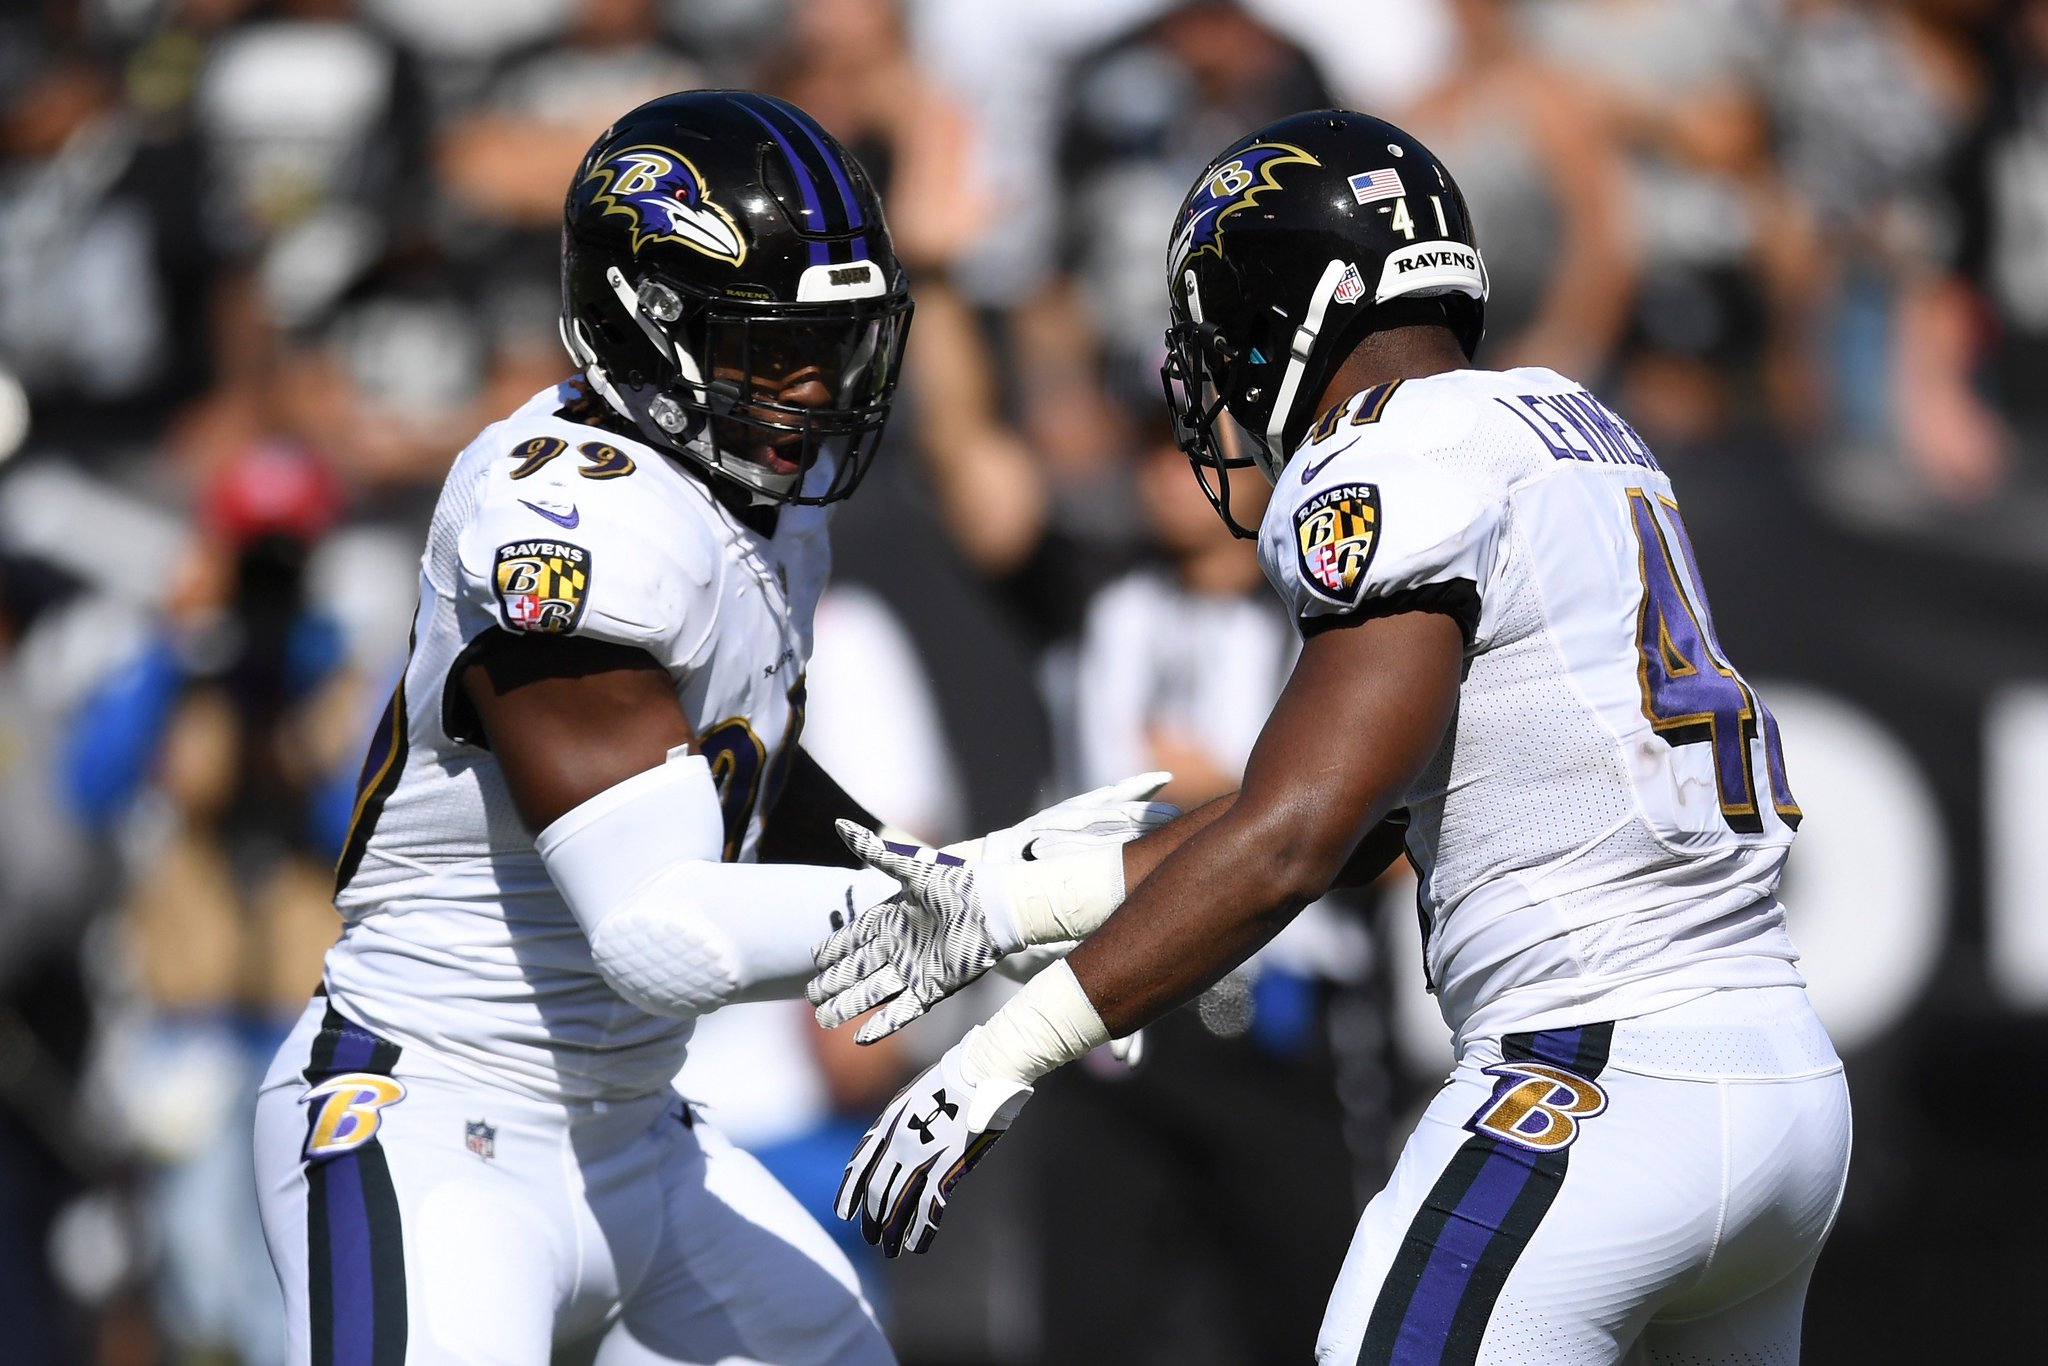 Baltimore bounces back!  Ravens hand Raiders 3rd-straight loss with 30-17 victory https://t.co/xVaR6y84tH